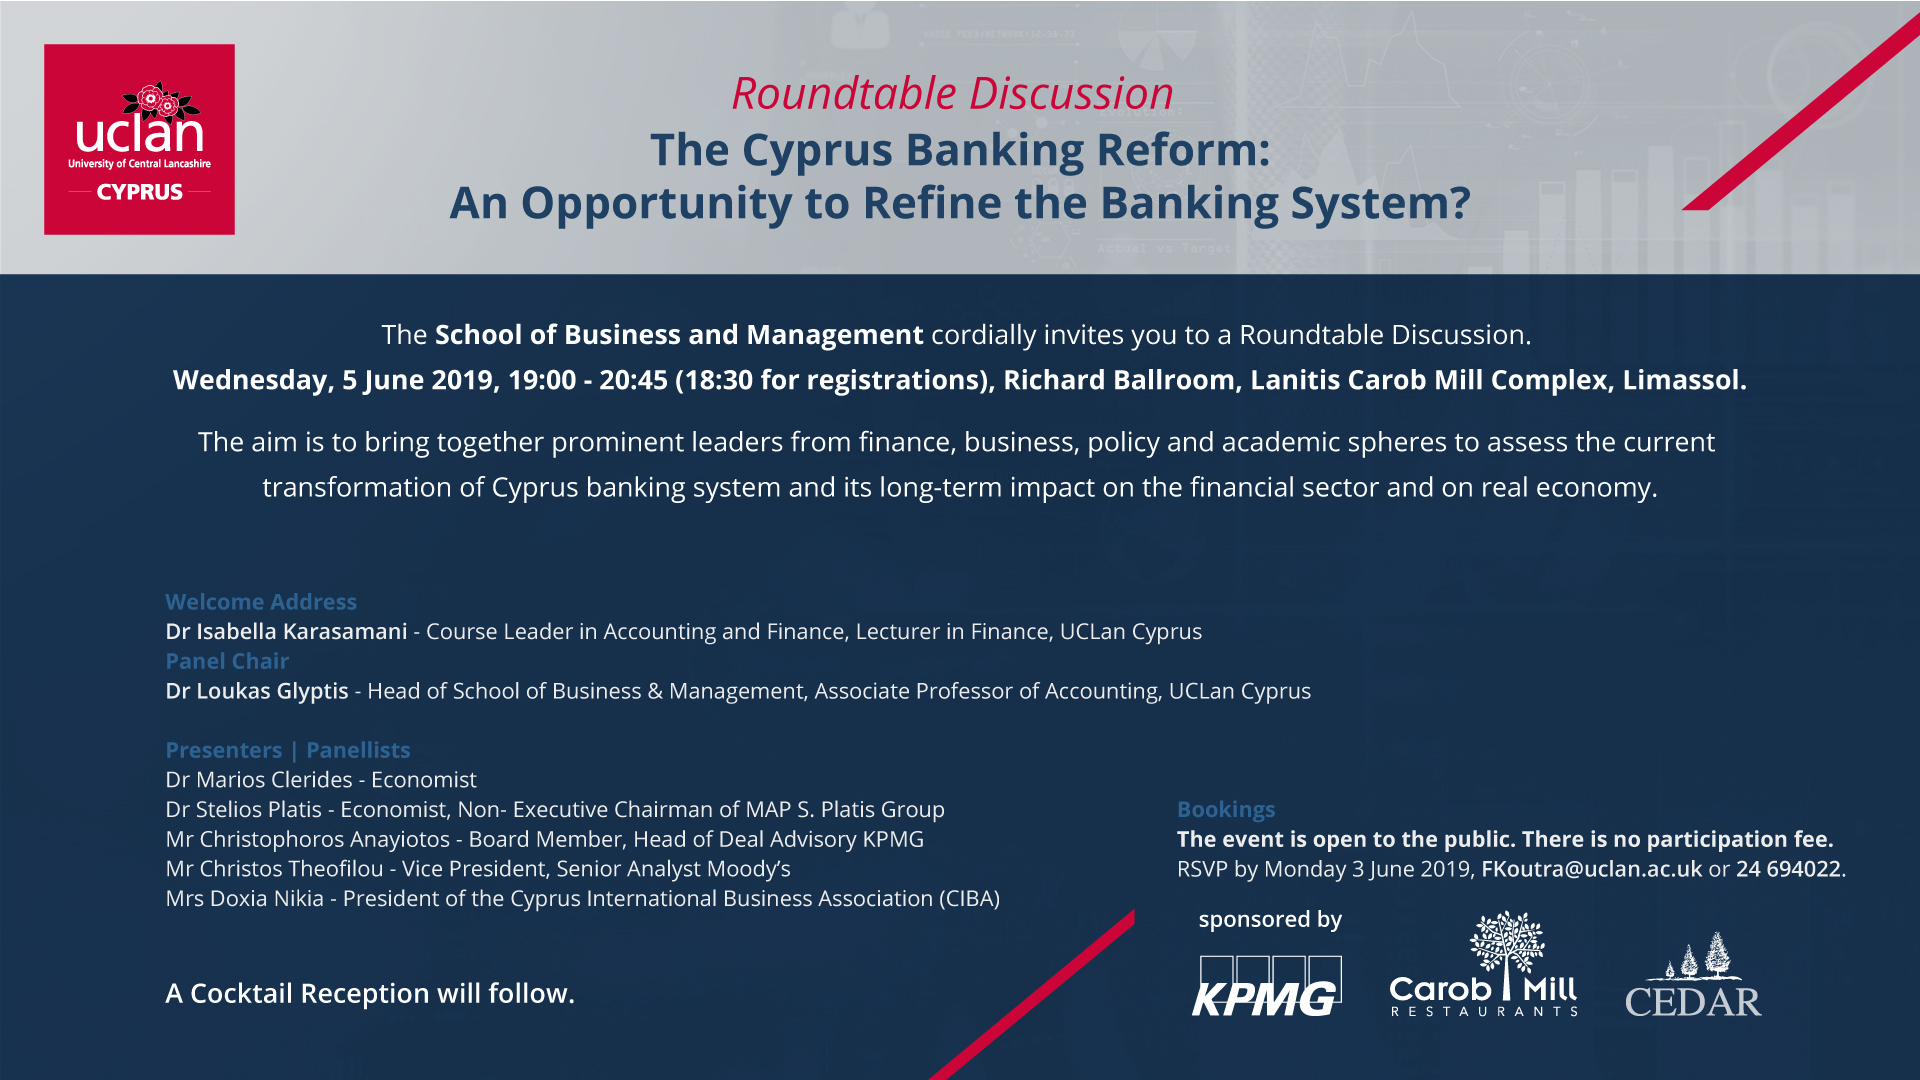 The Cyprus Banking Reform: An